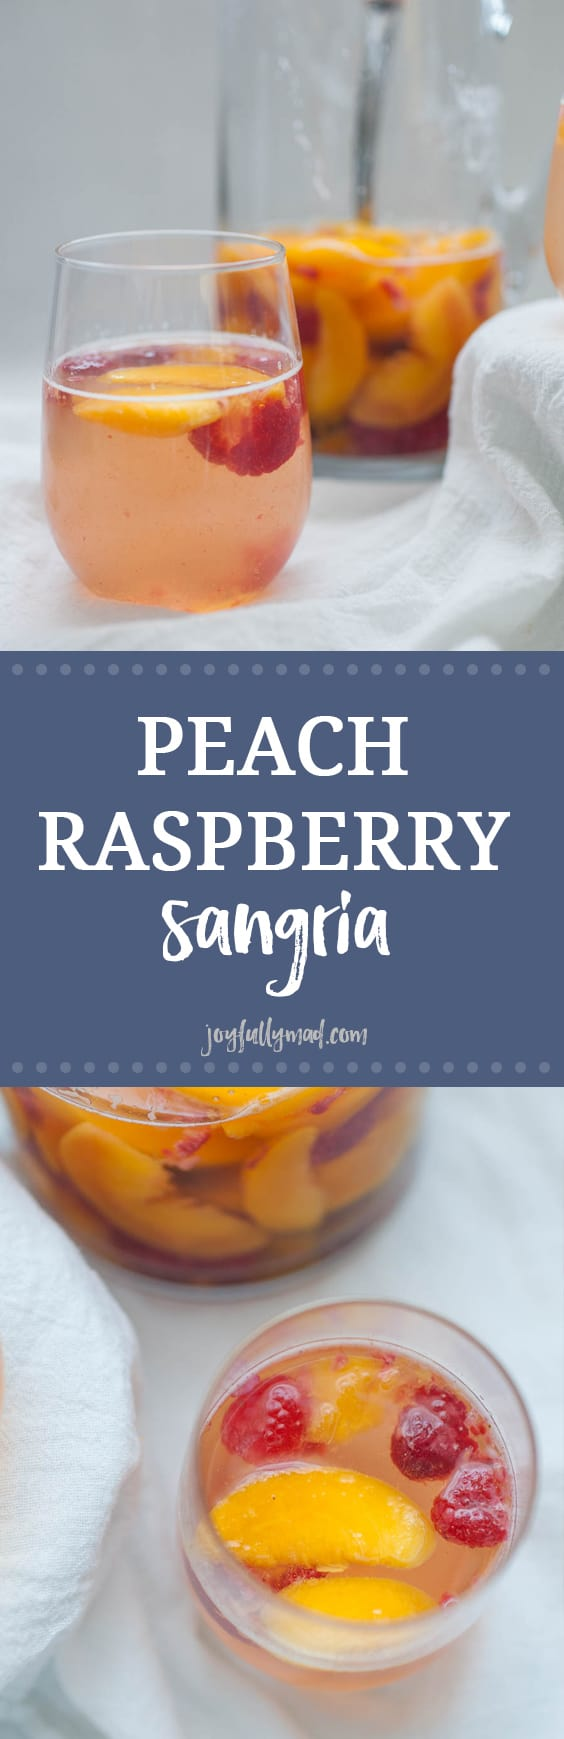 This Peach Raspberry Sangria is going to be the hit of all of your summer get togethers! A simple sangria recipe with peaches, raspberry, Moscato wine and a quick peach simple syrup makes this cocktail irresistible in the summer.?